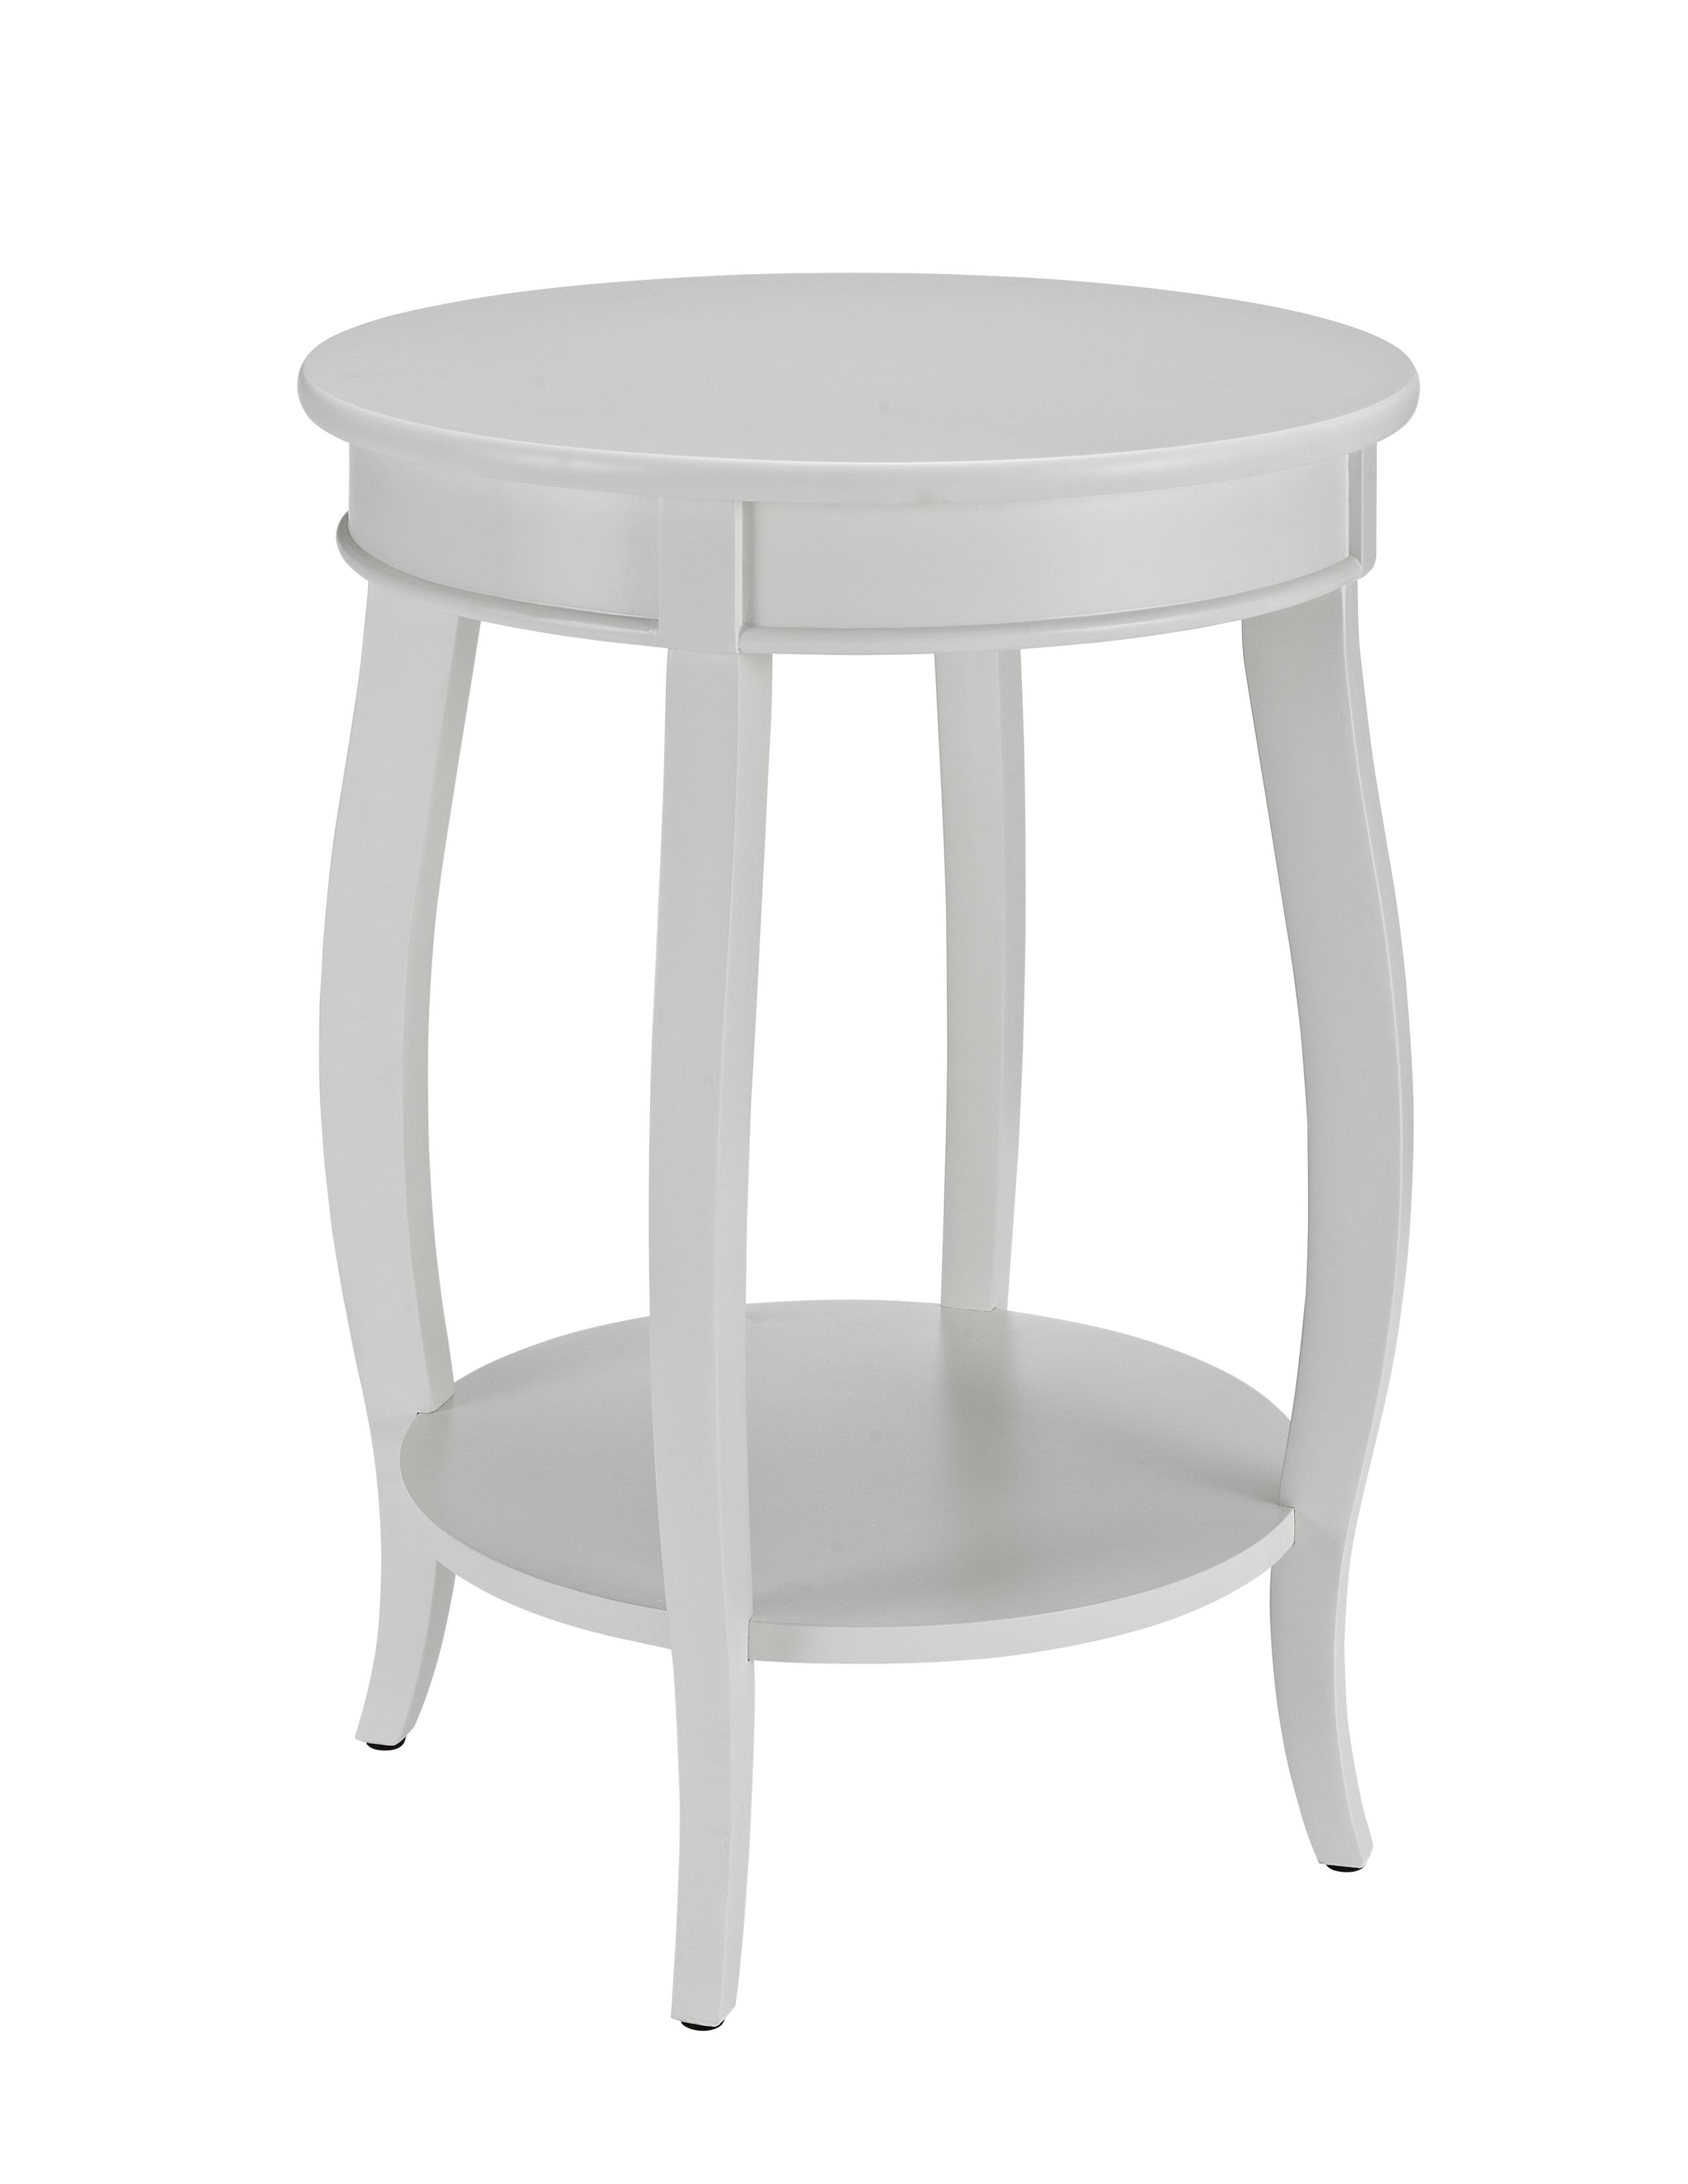 Accent Tables Round Table w/ Shelf by Powell at Lynn's Furniture & Mattress